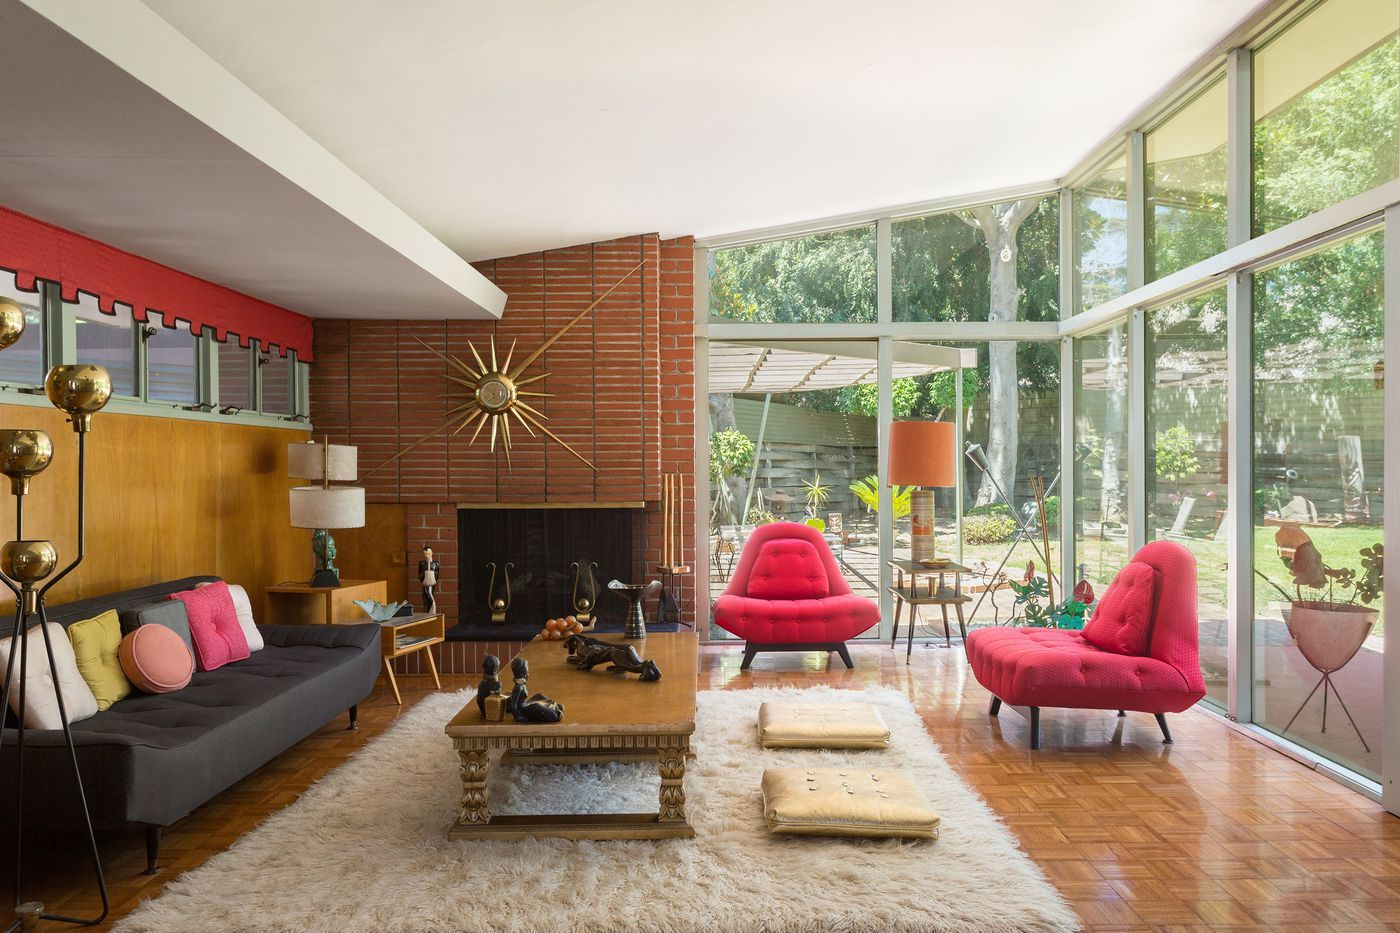 Paul Williams midcentury modern house for sale in Ontario for $1.1M - Curbed LA